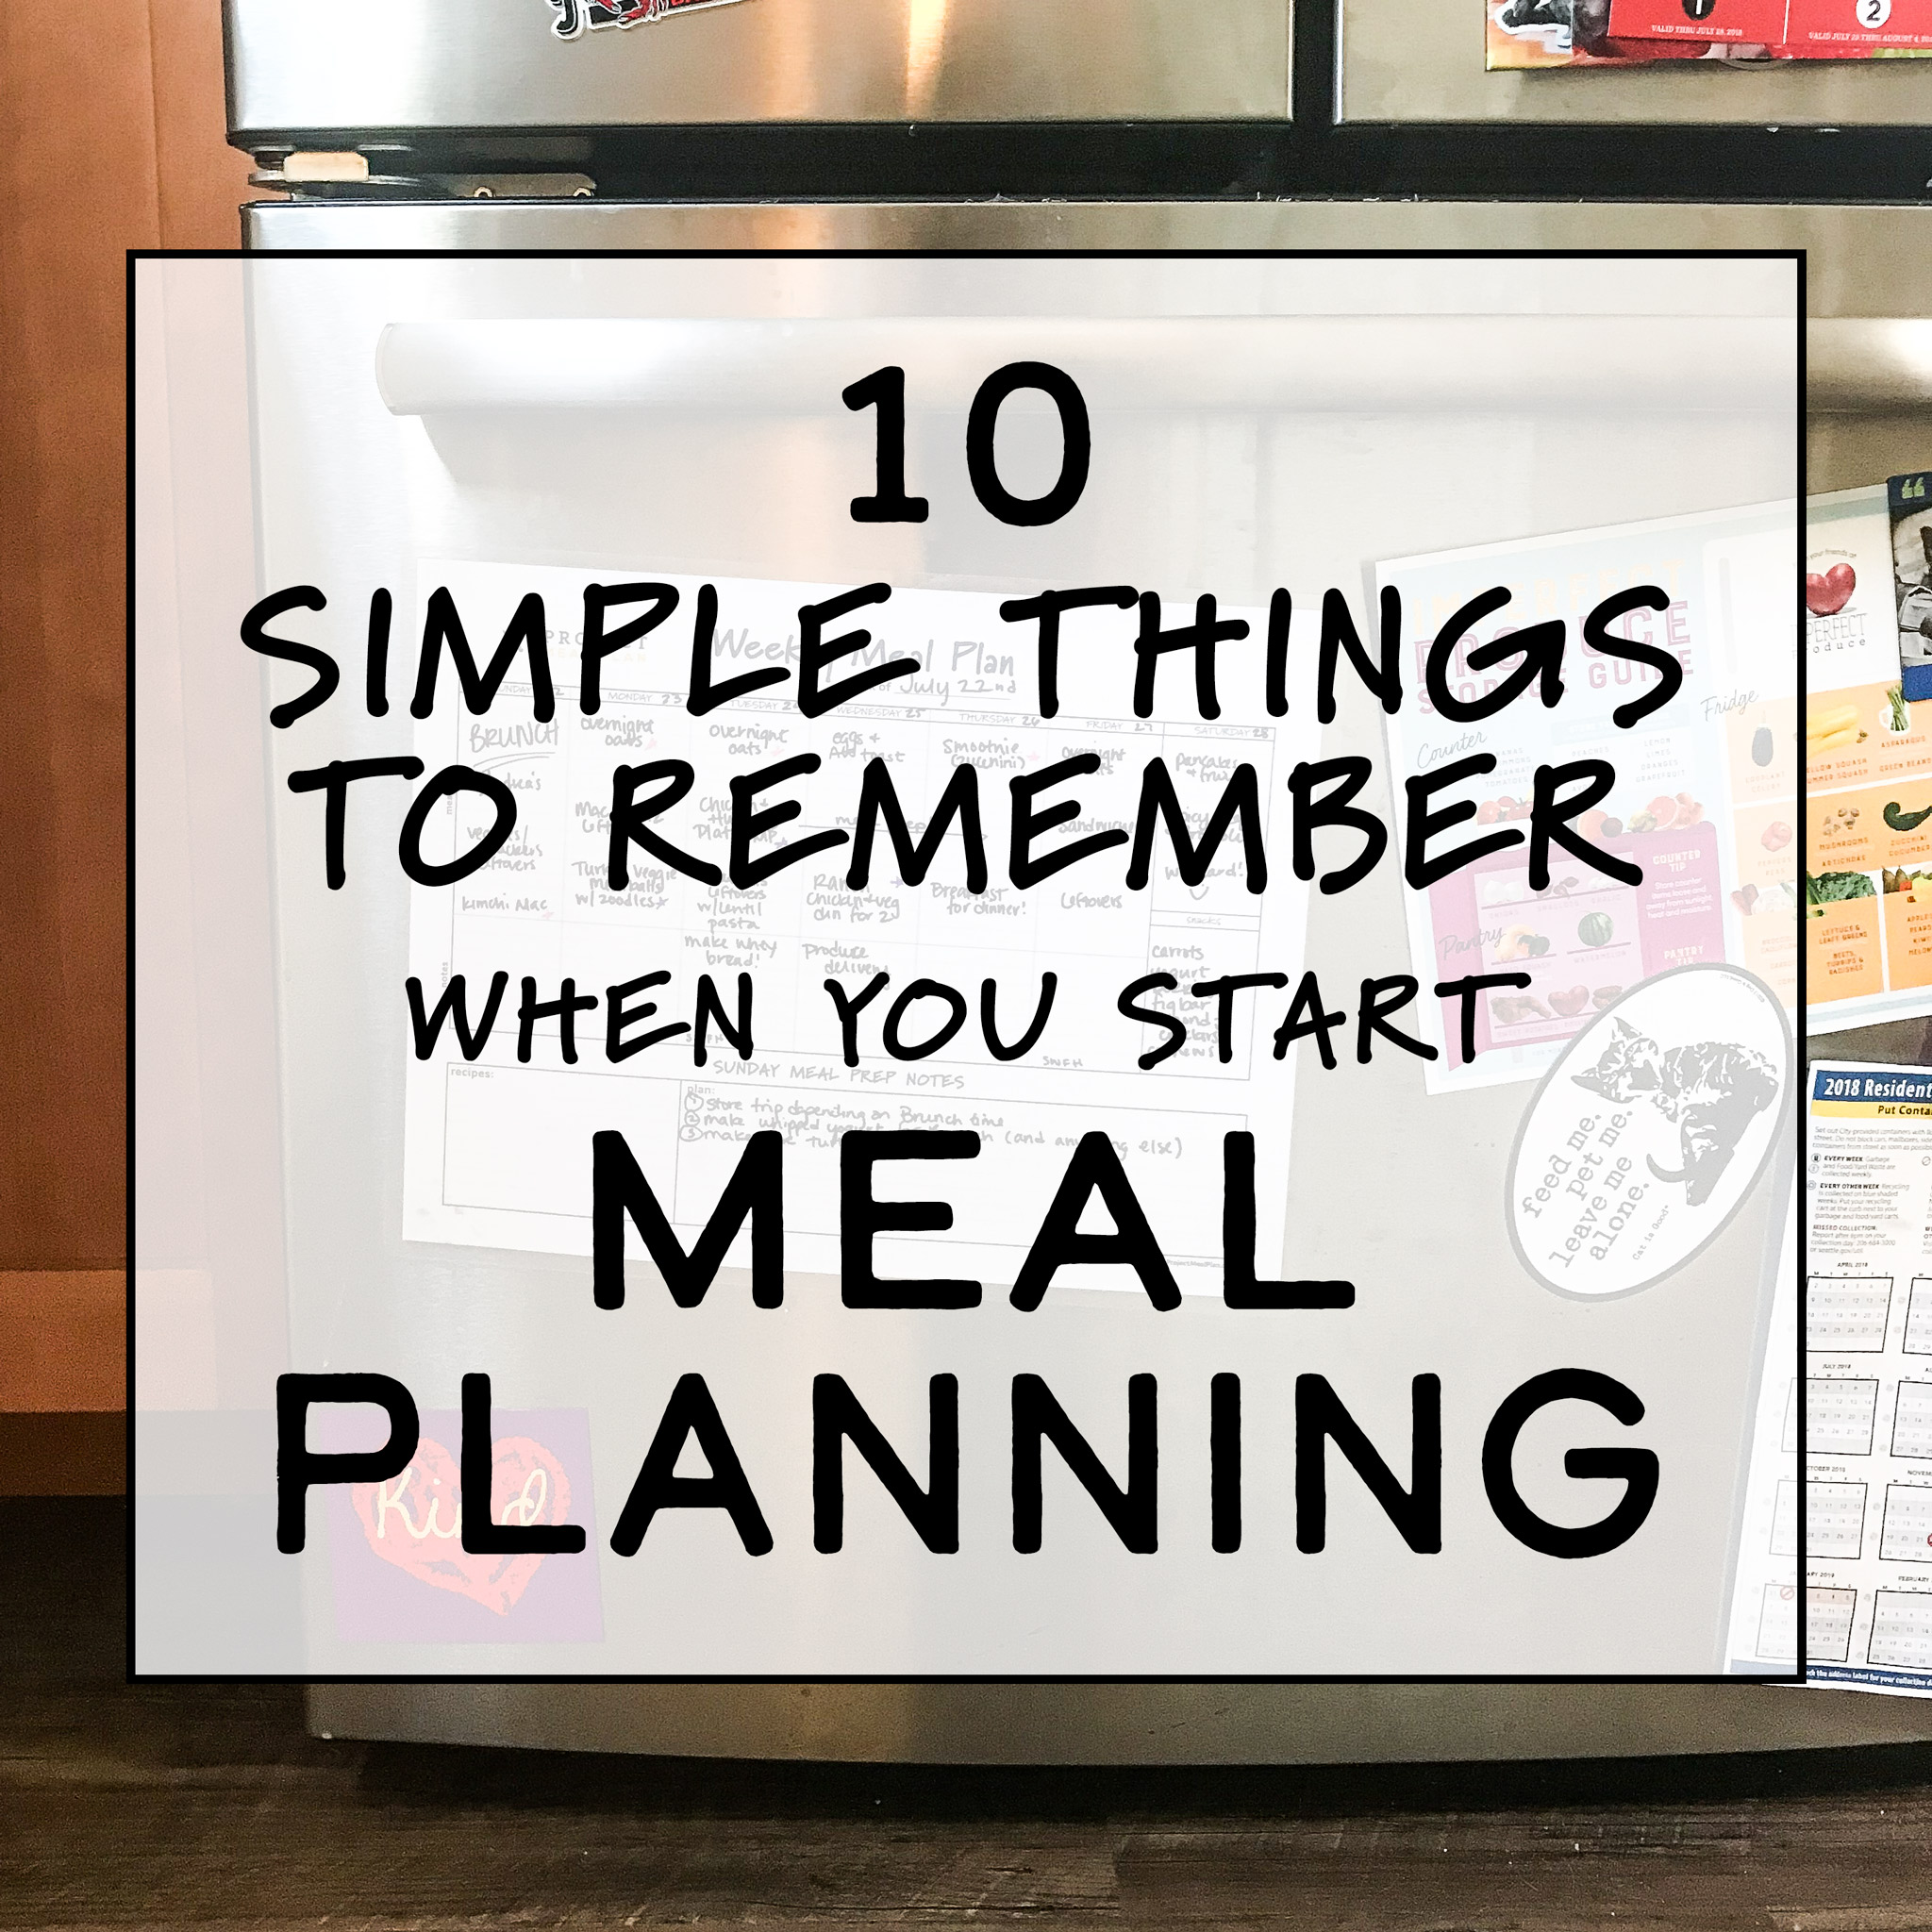 10 Simple Things to Remember When You Start Meal Planning